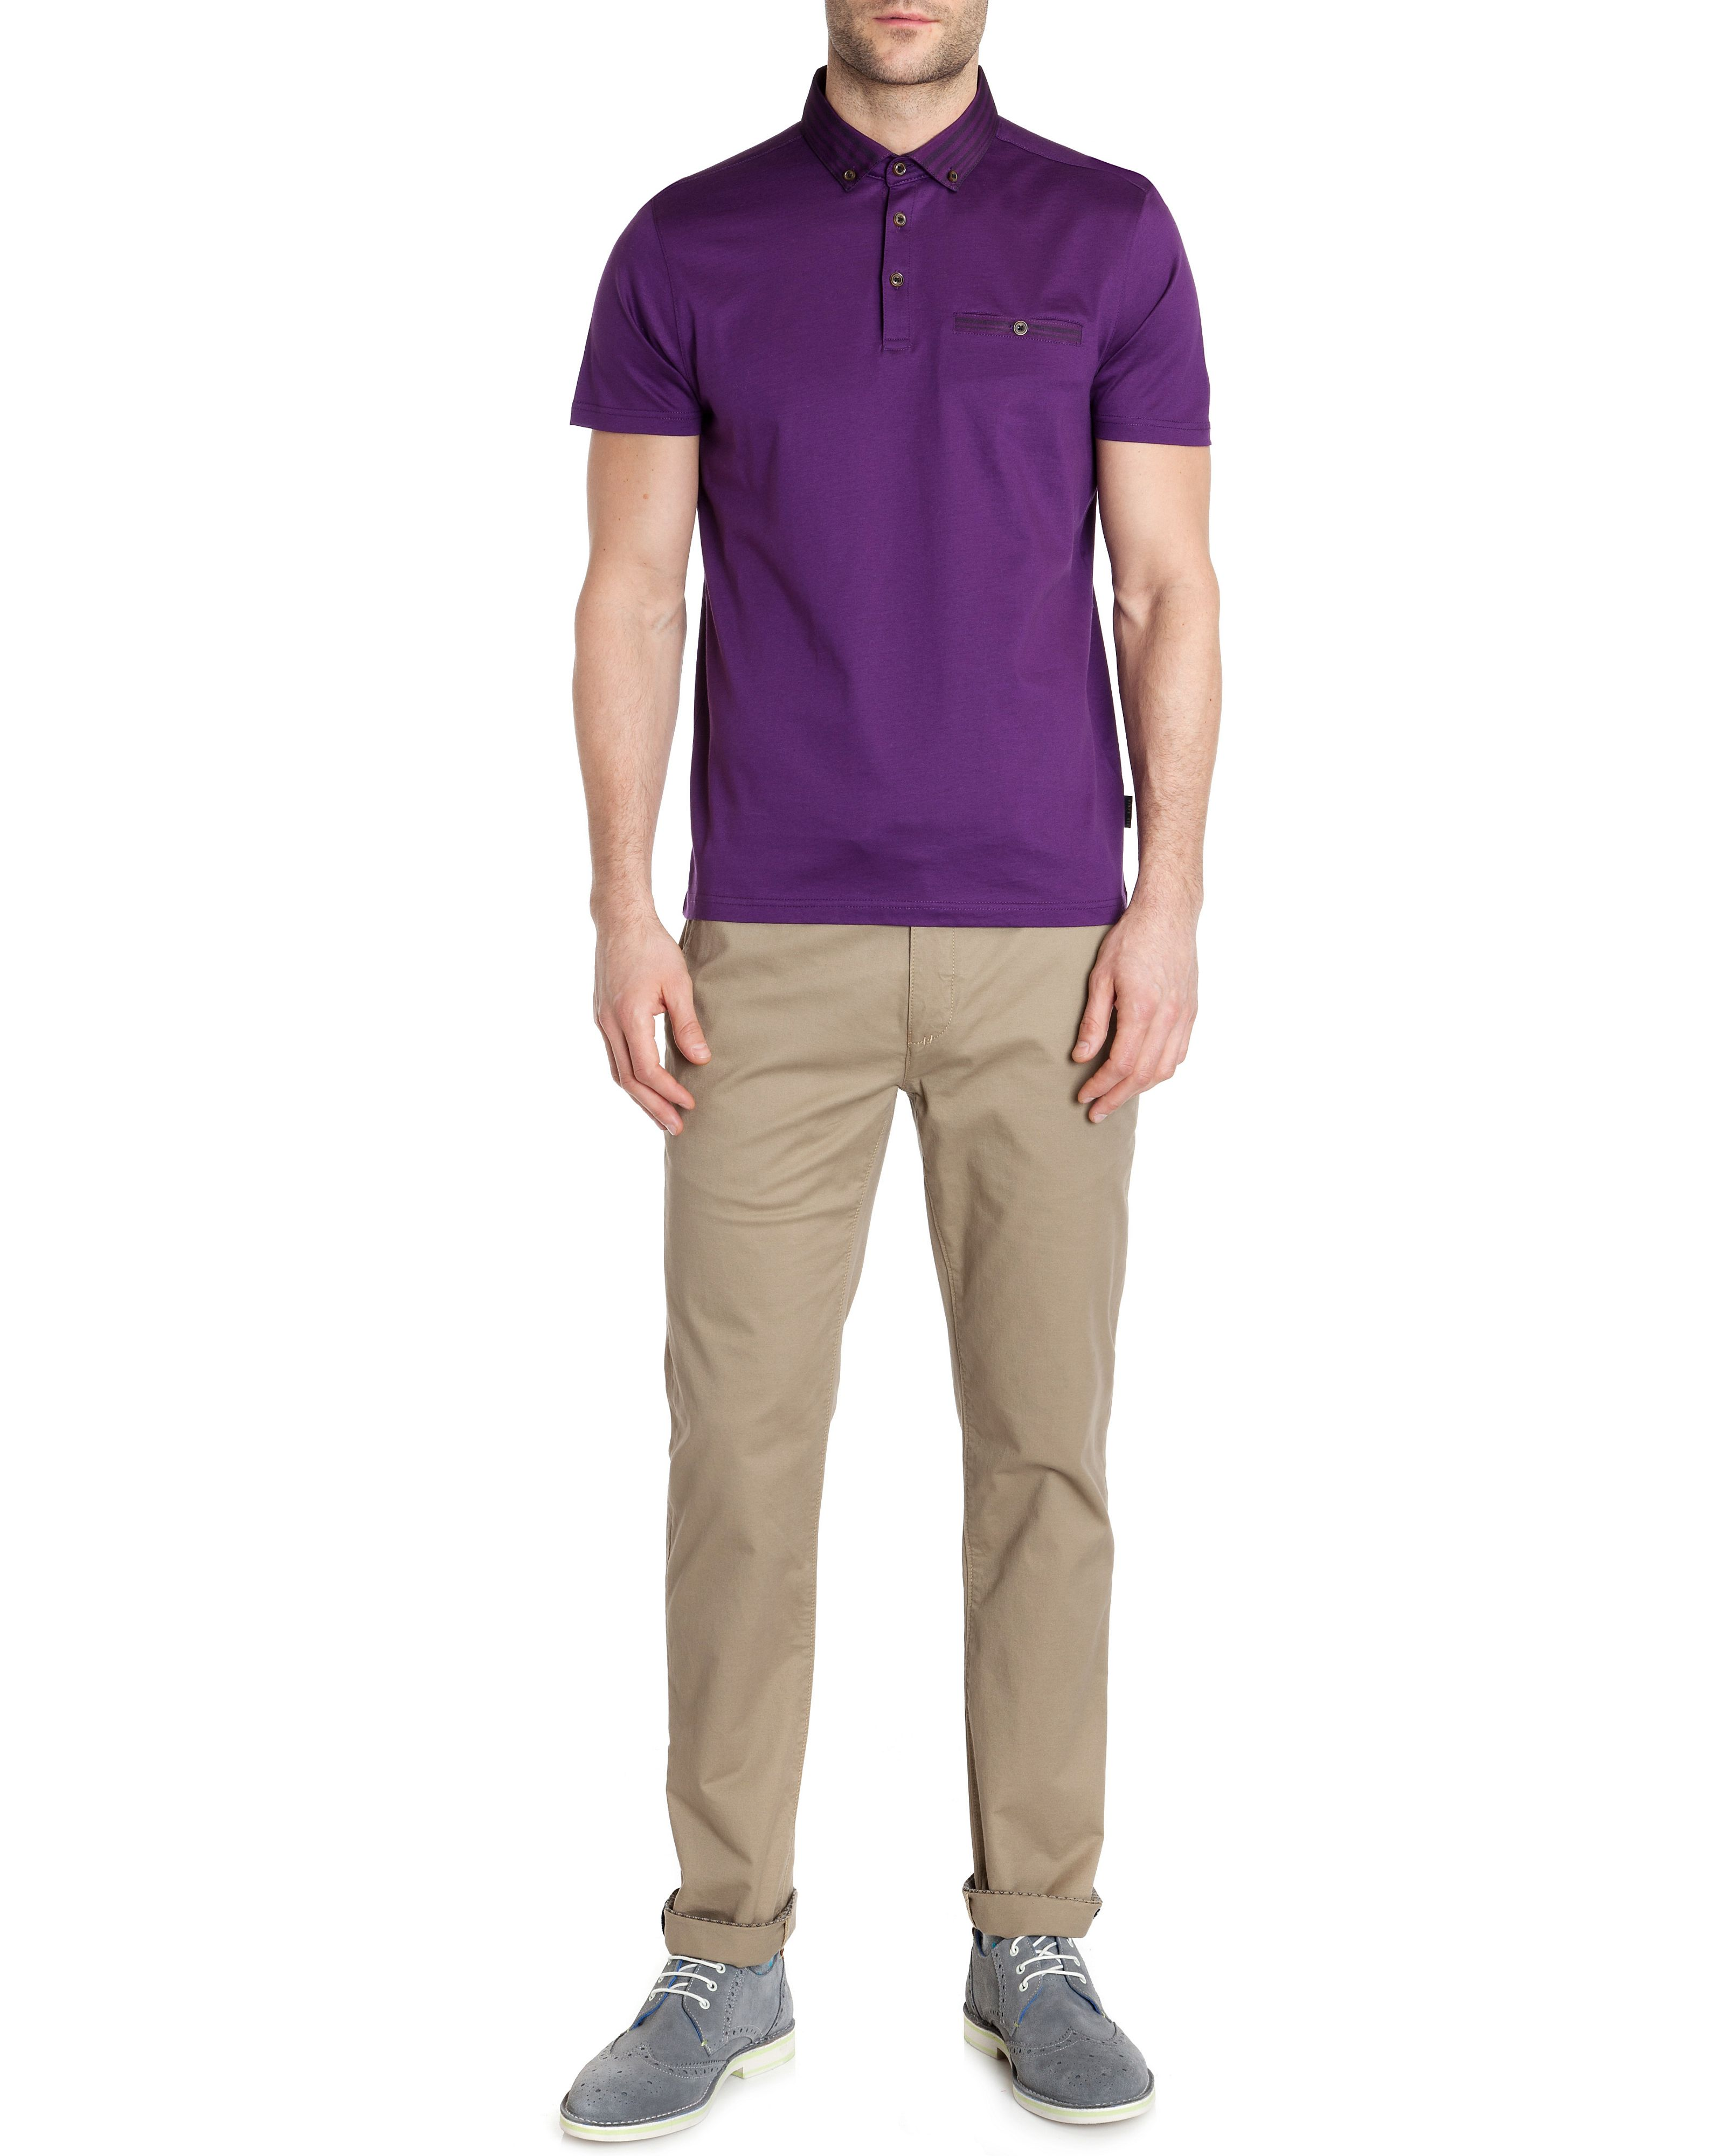 Nugrain grois grain collar polo